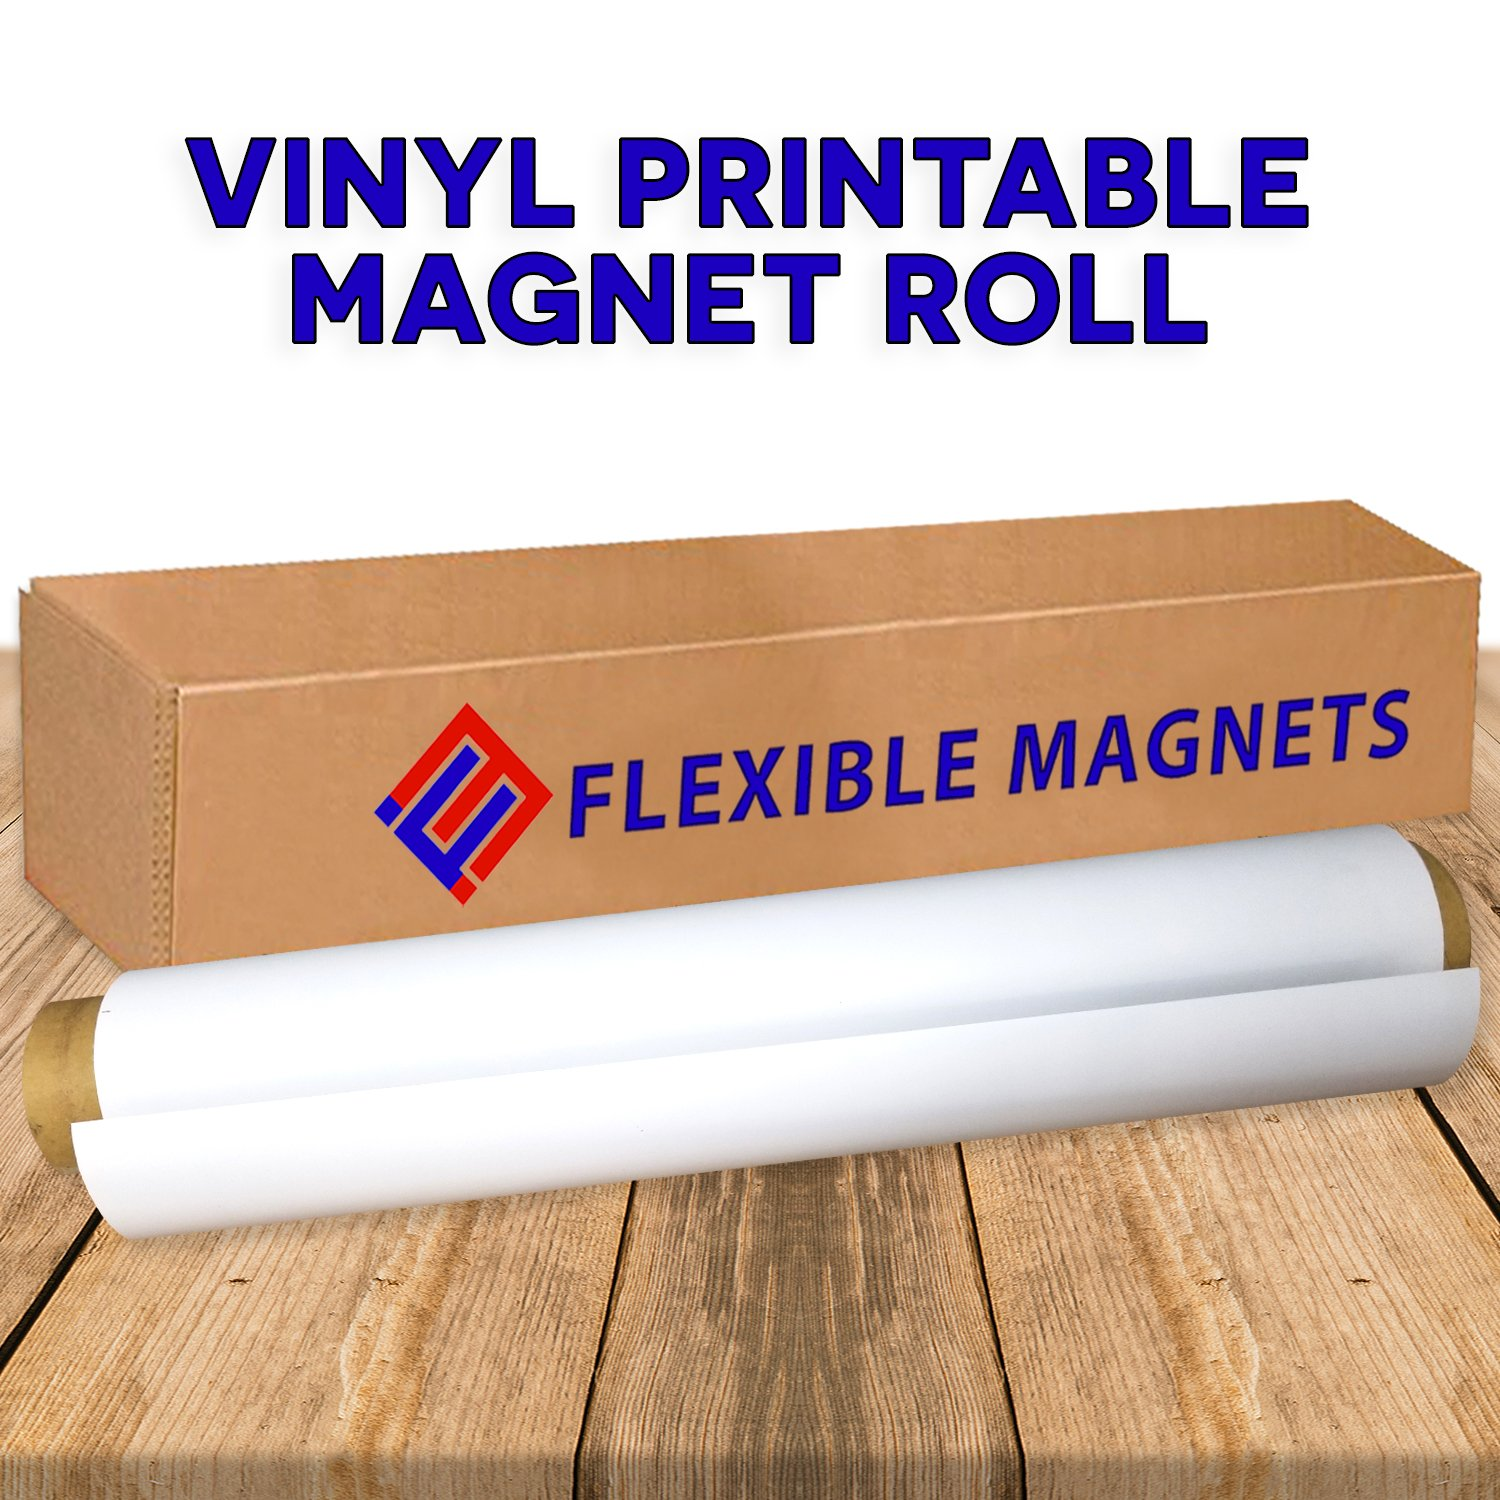 Flexible Magnets 24''x3 feet .30mil Super Strong Flexible Material by Flexible magnets (Image #1)